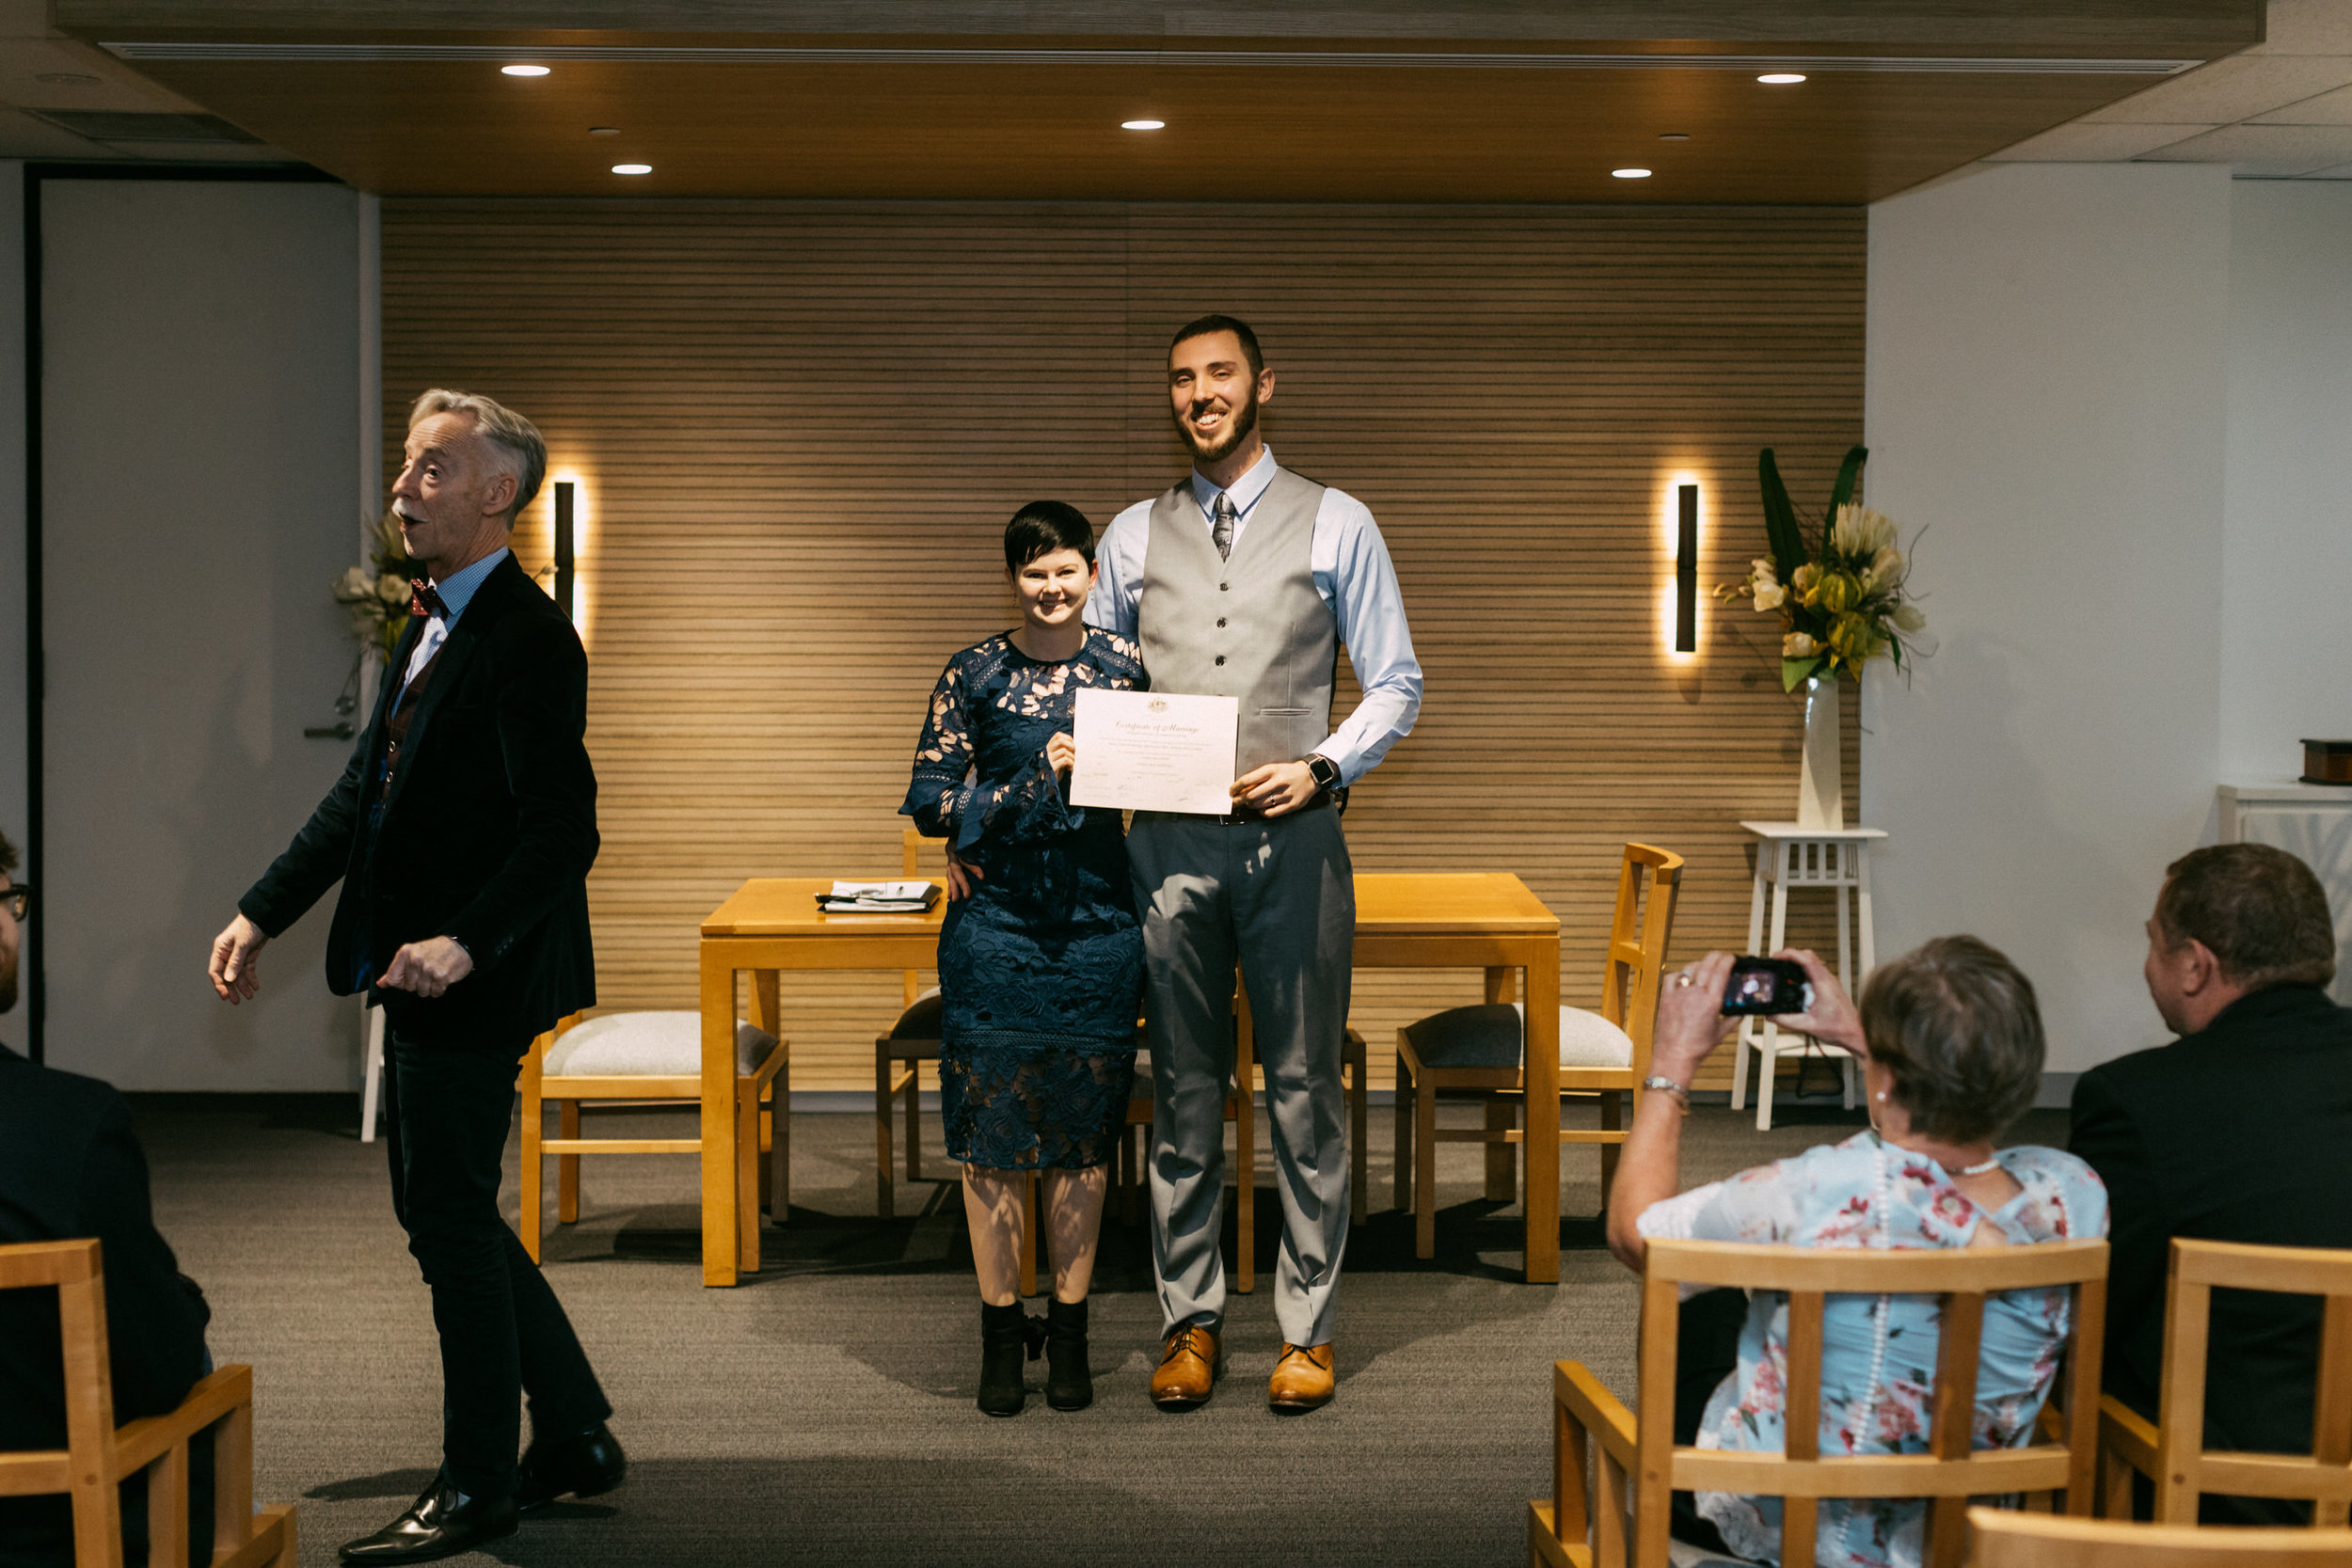 Adelaide Registry Office Wedding Photography 015.jpg